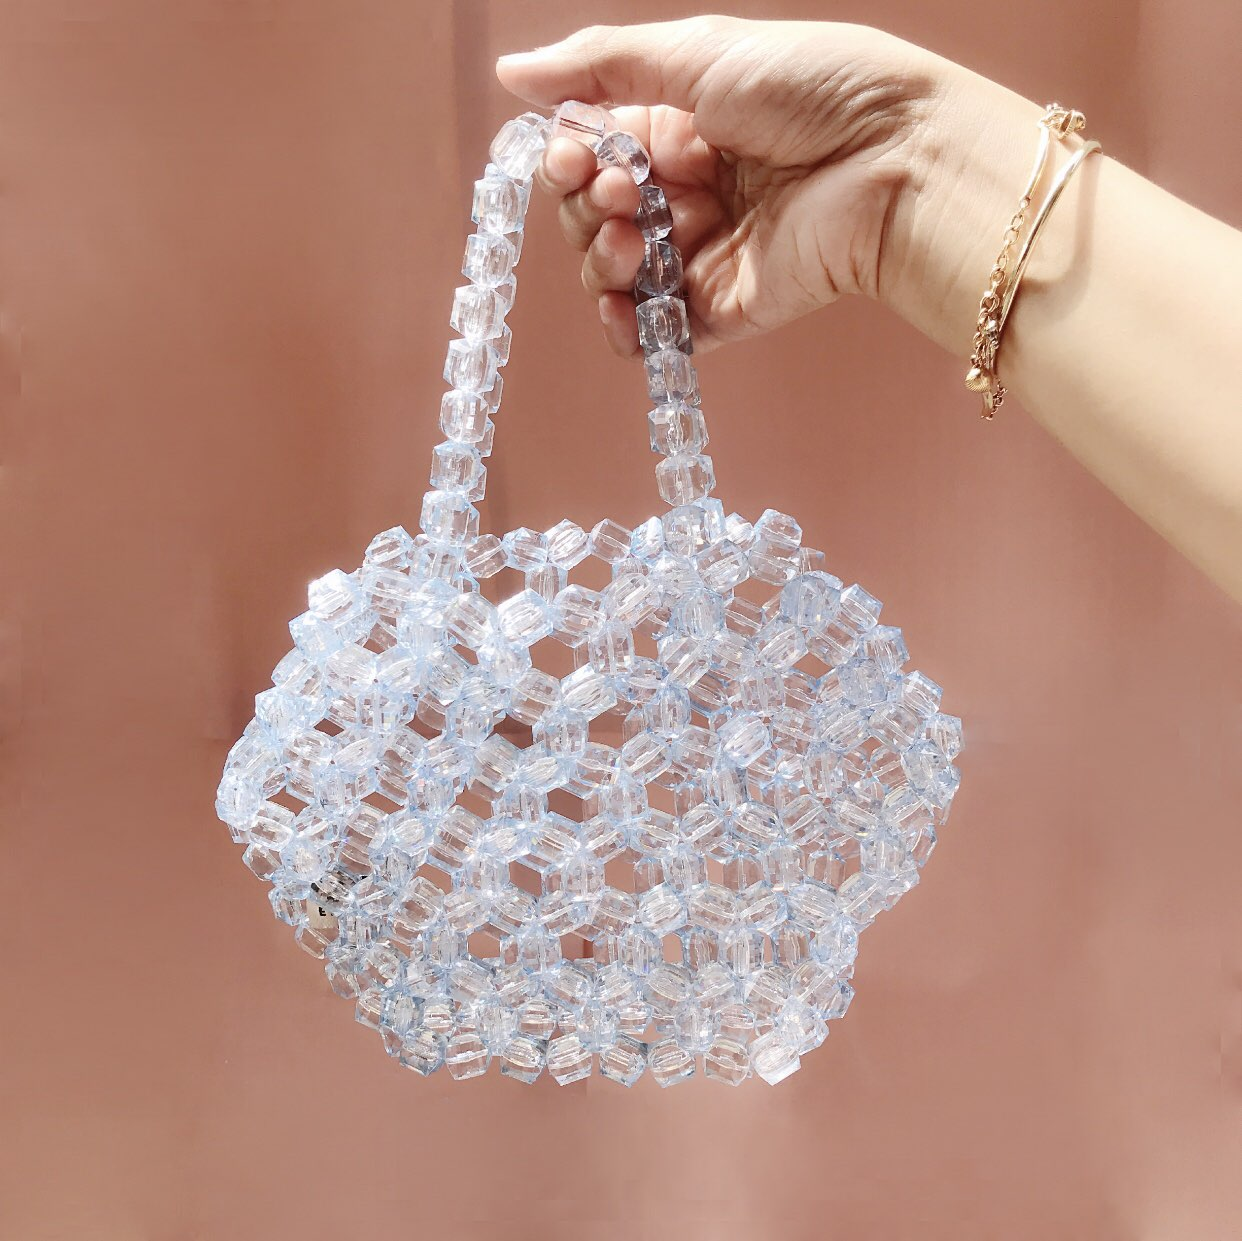 The Crystal Bag